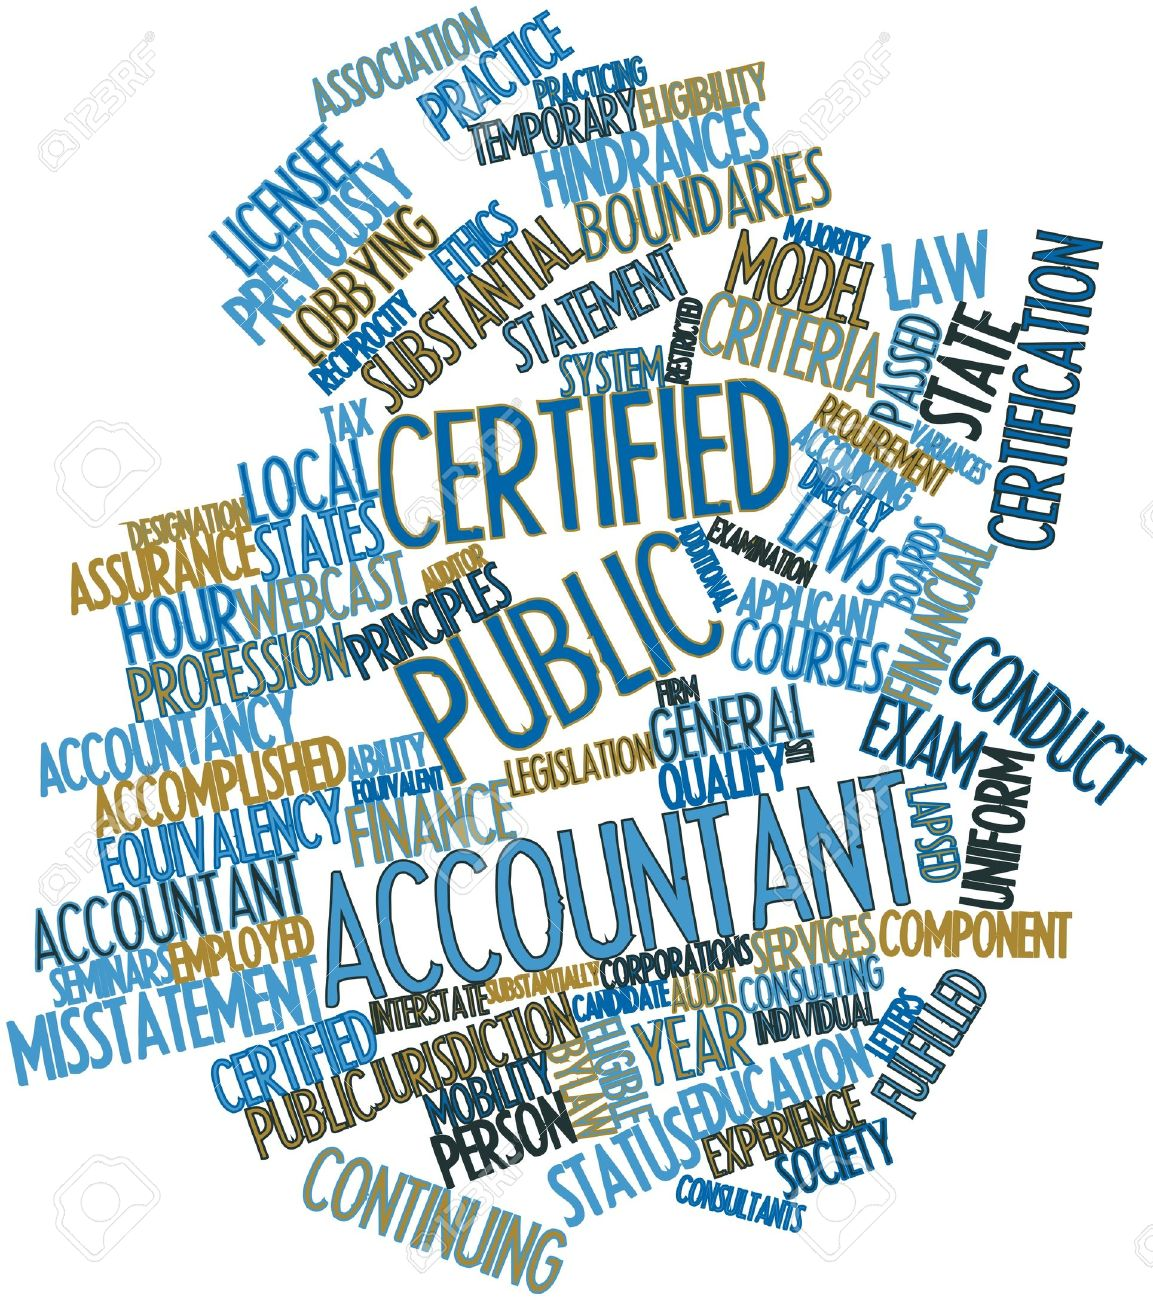 Certified public accountant clipart 3 » Clipart Station.